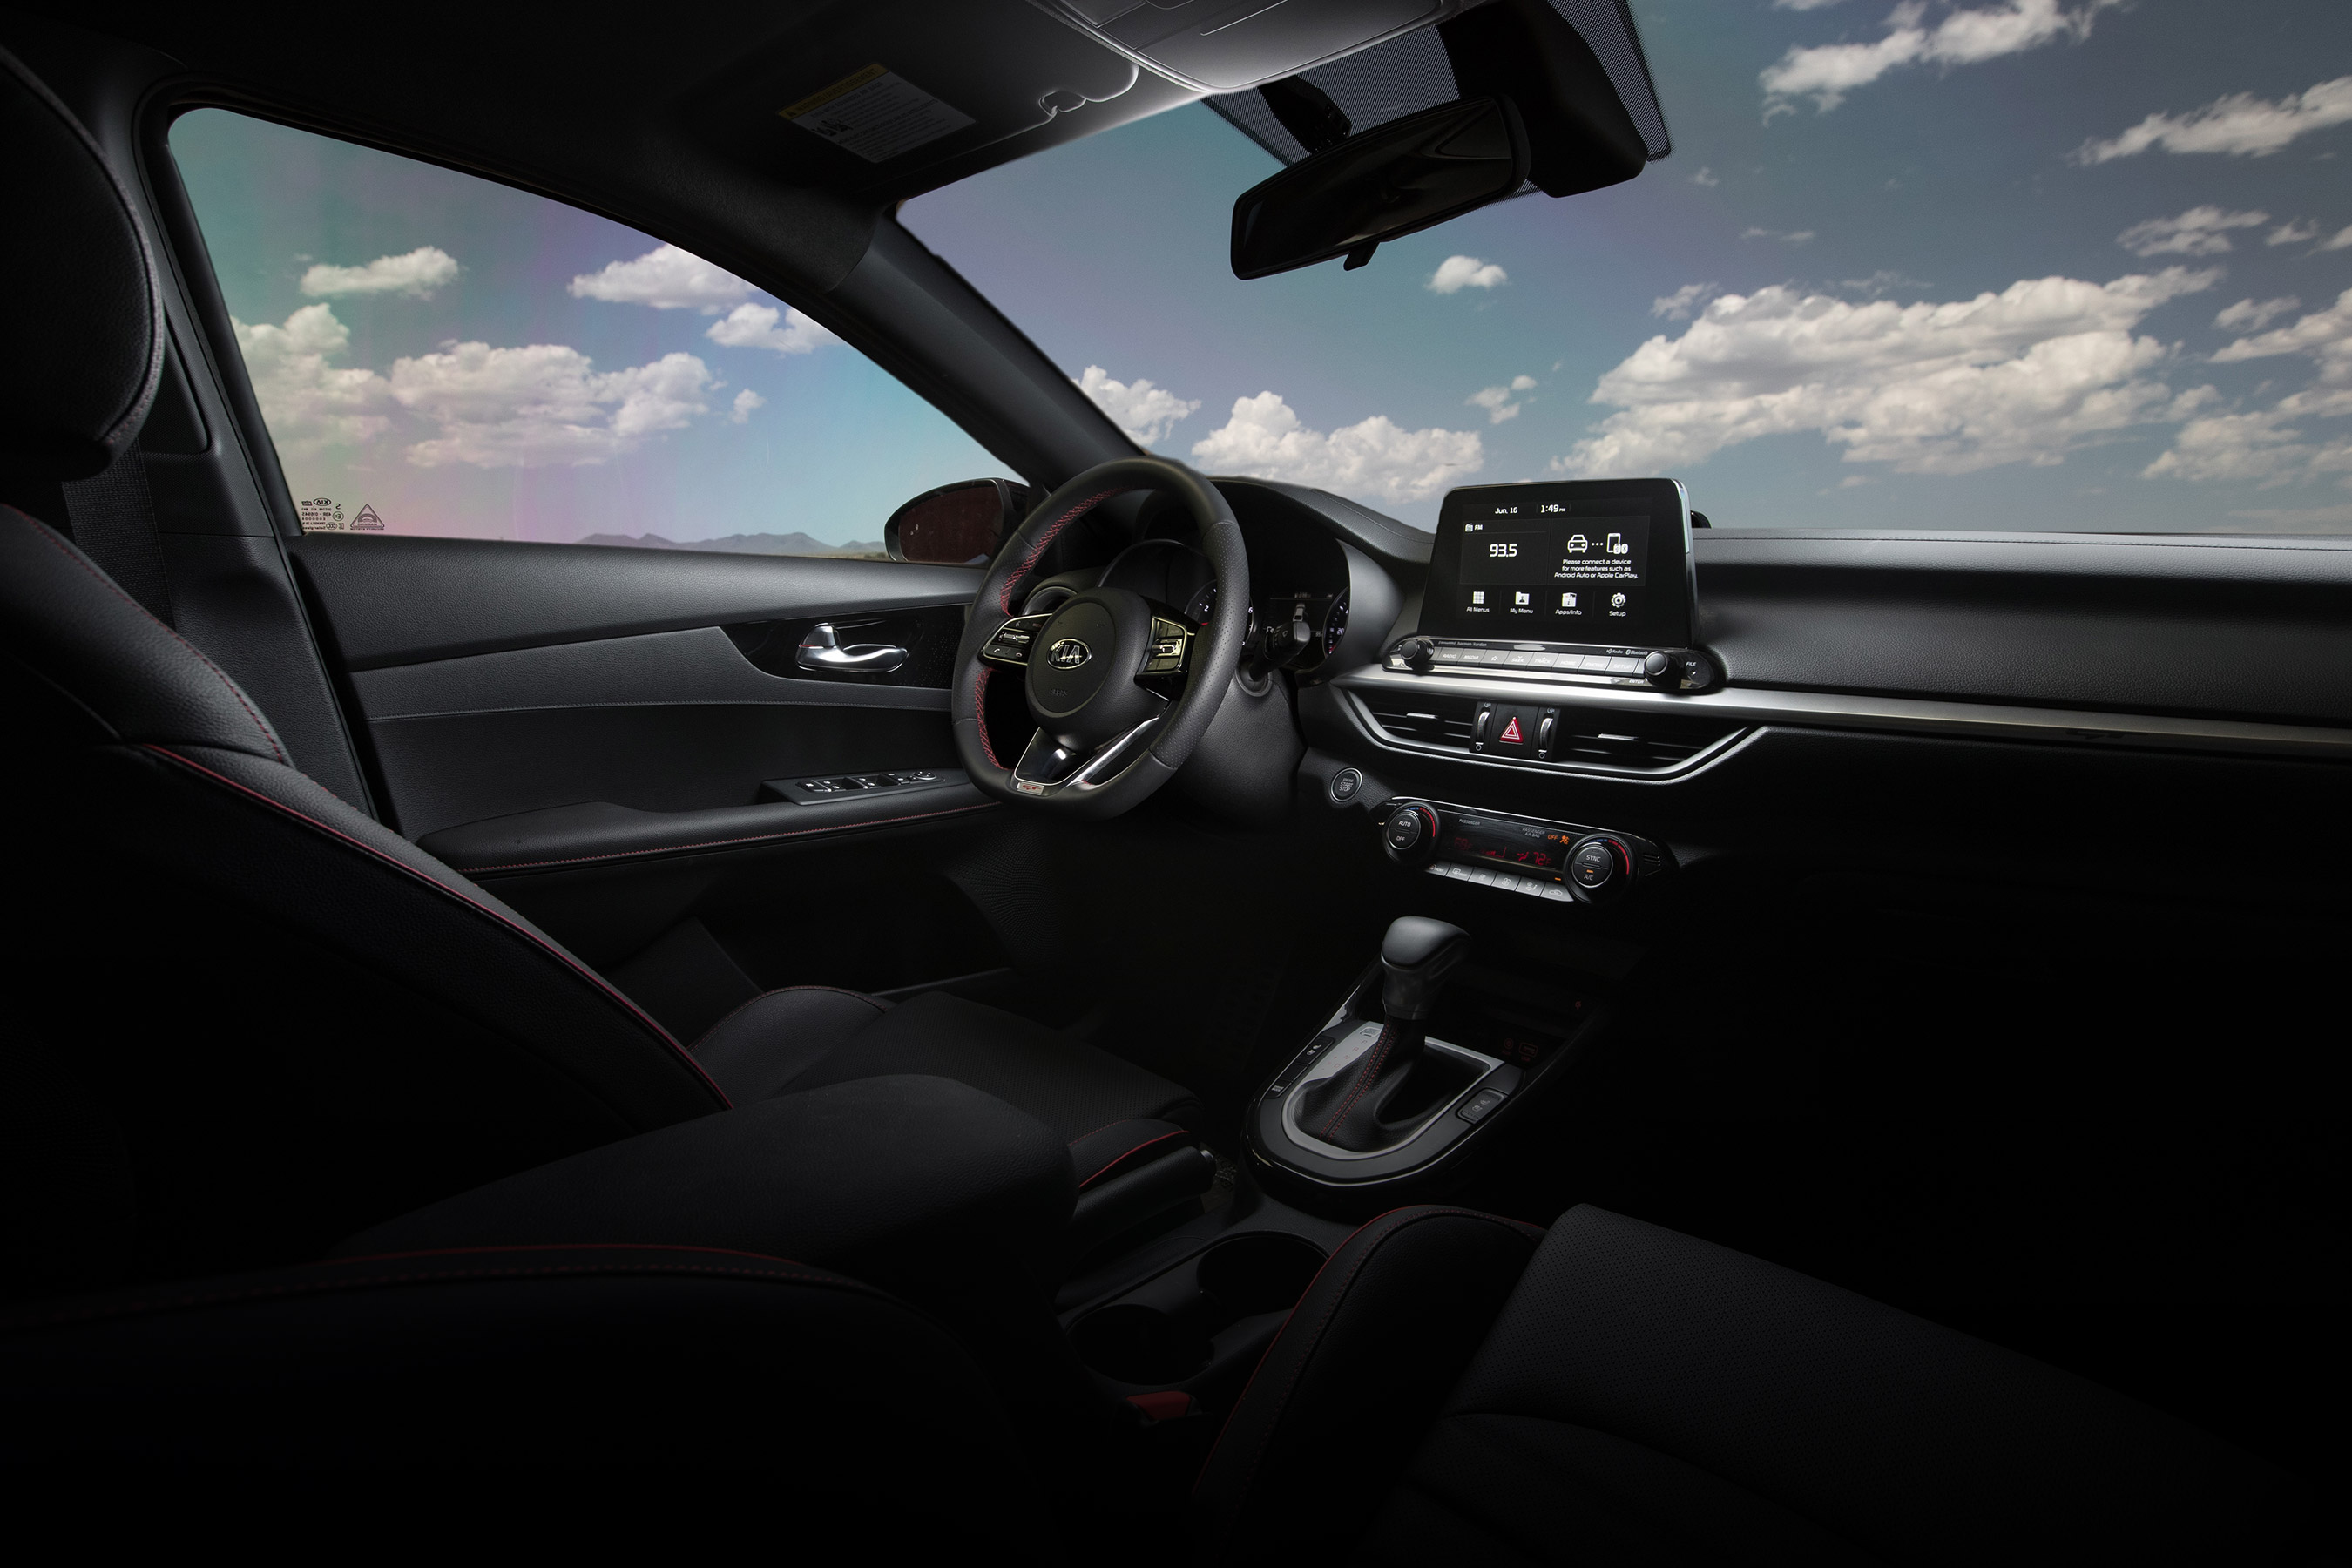 Interior of the 2020 Kia Forte